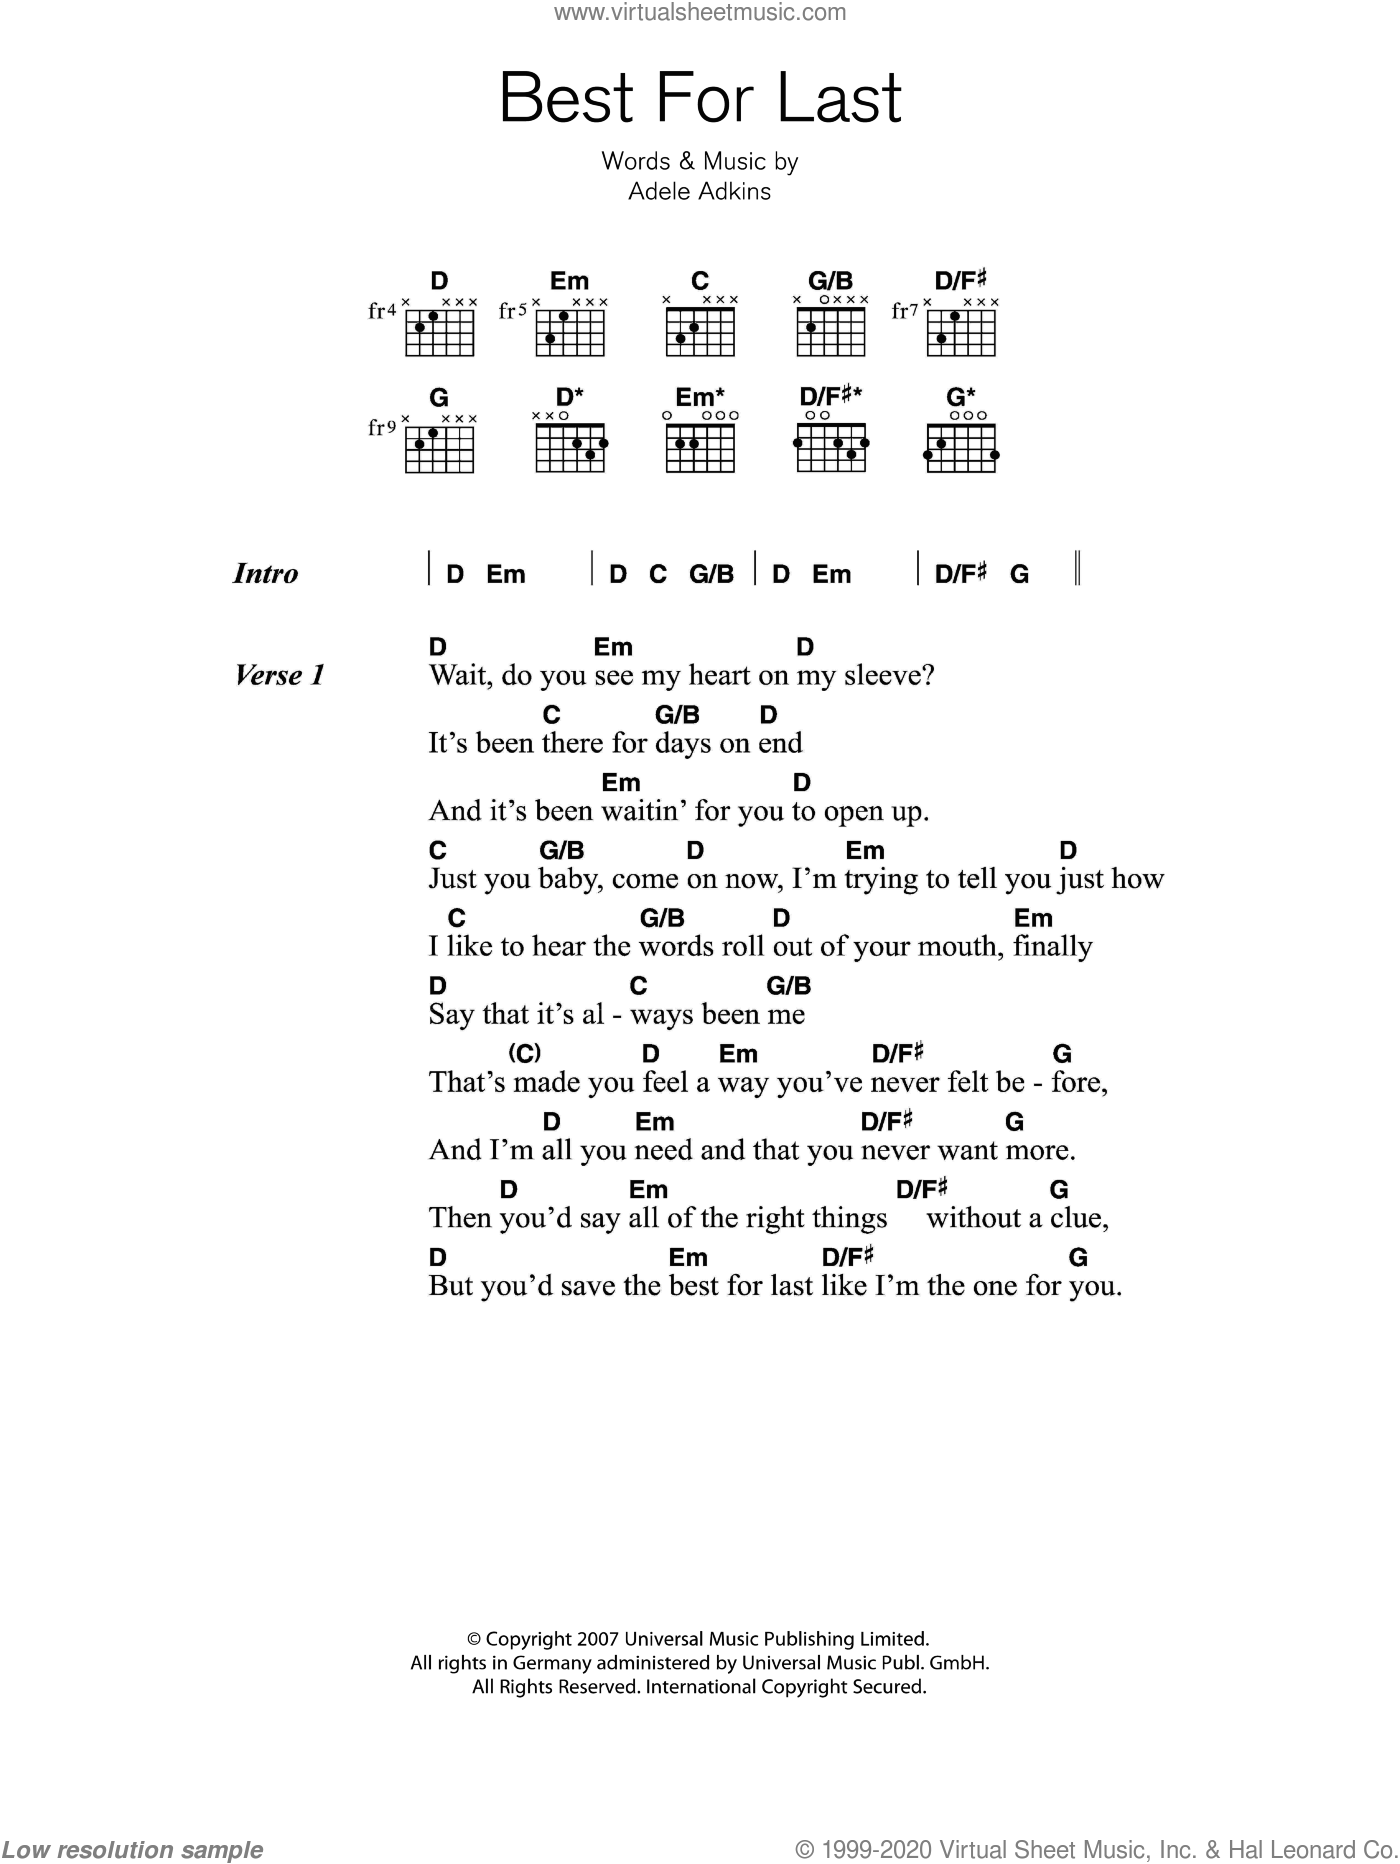 Best For Last sheet music for guitar (chords) by Adele Adkins and Adele. Score Image Preview.